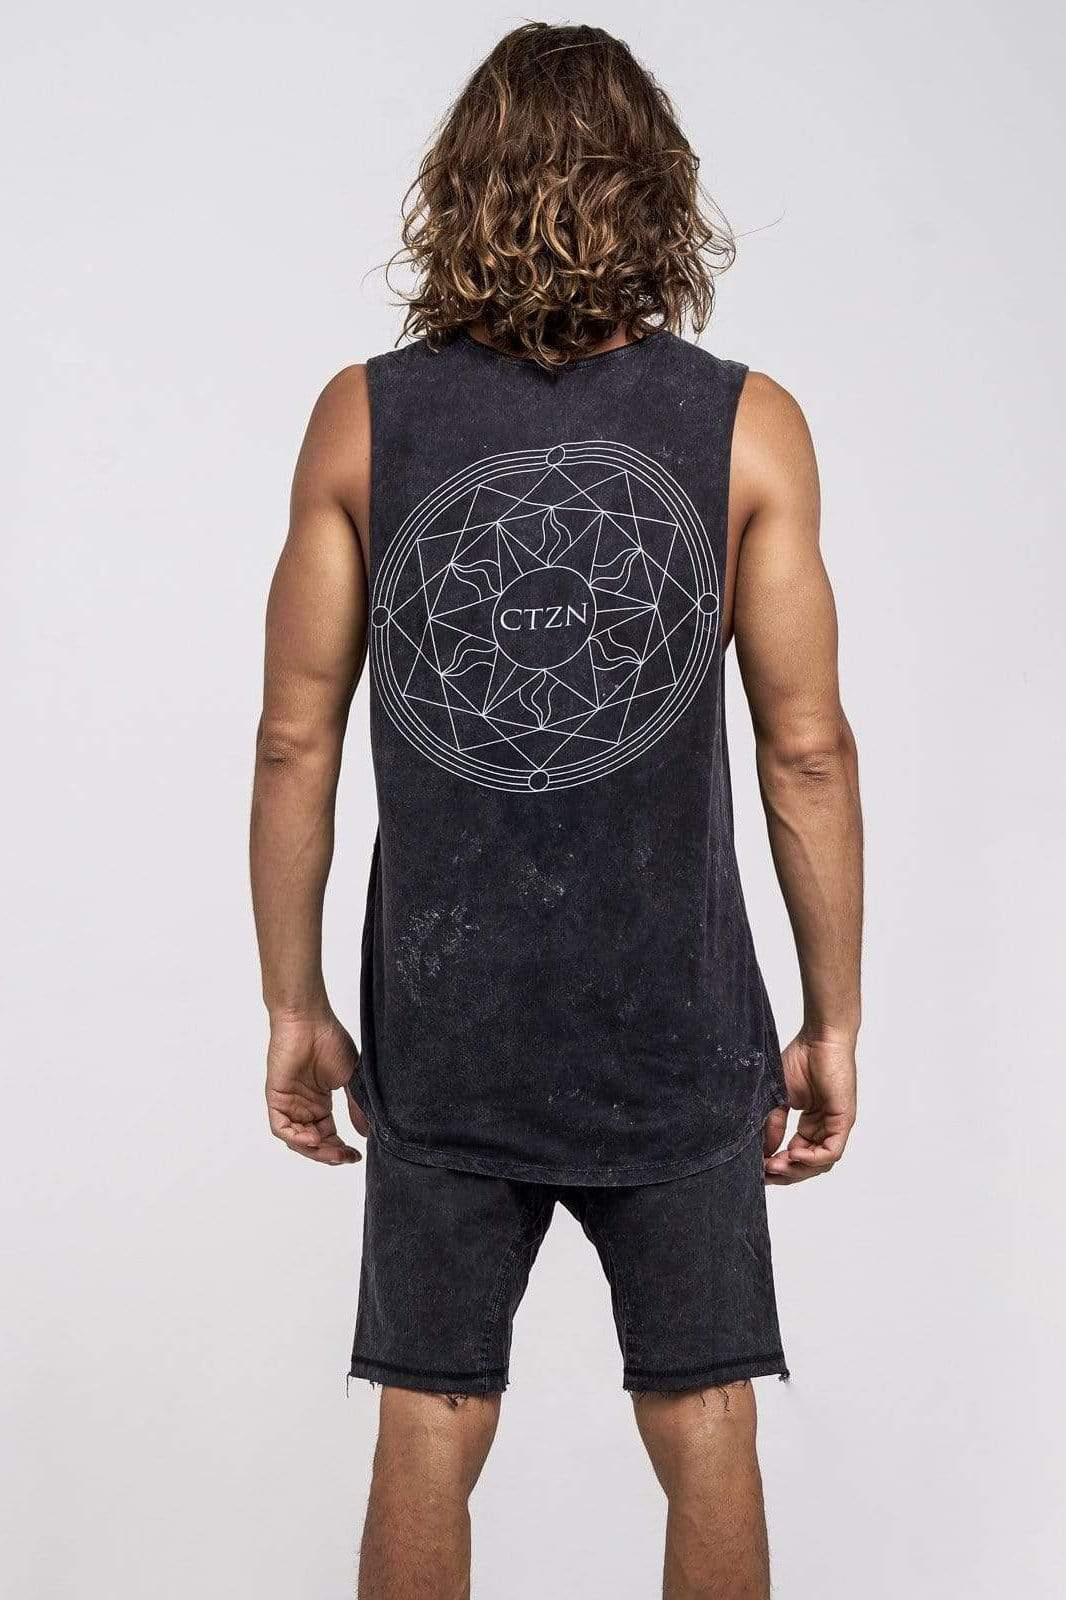 Ctzn Muscle Sun Star - Man Singlet - CITIZENS